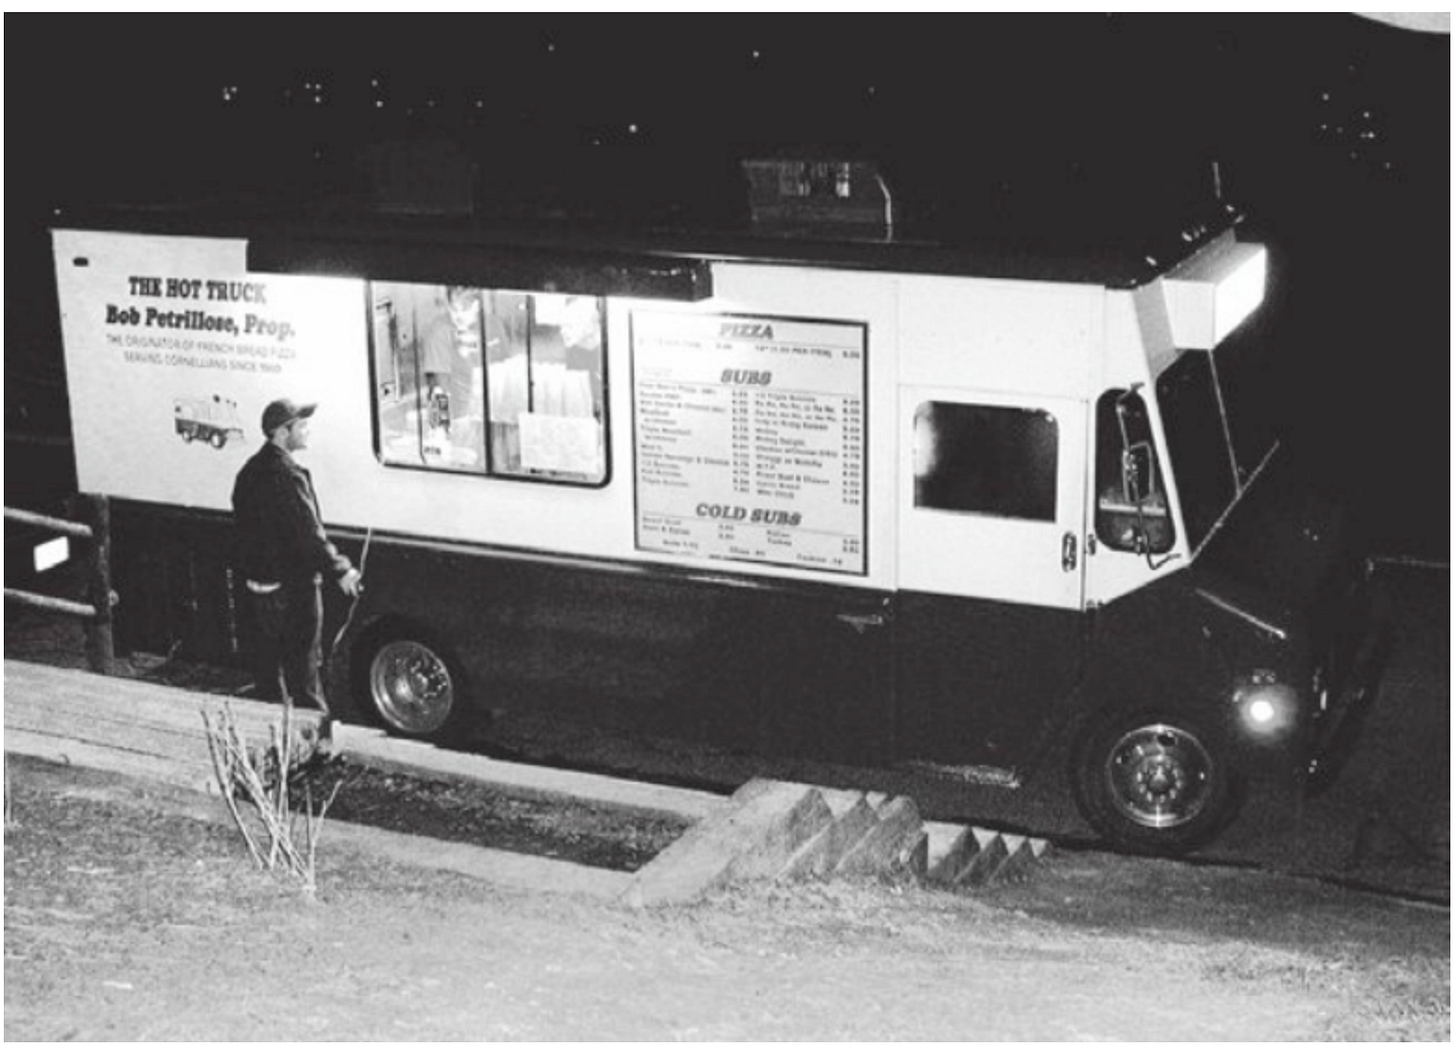 Photo of the hottruck food truck at night.